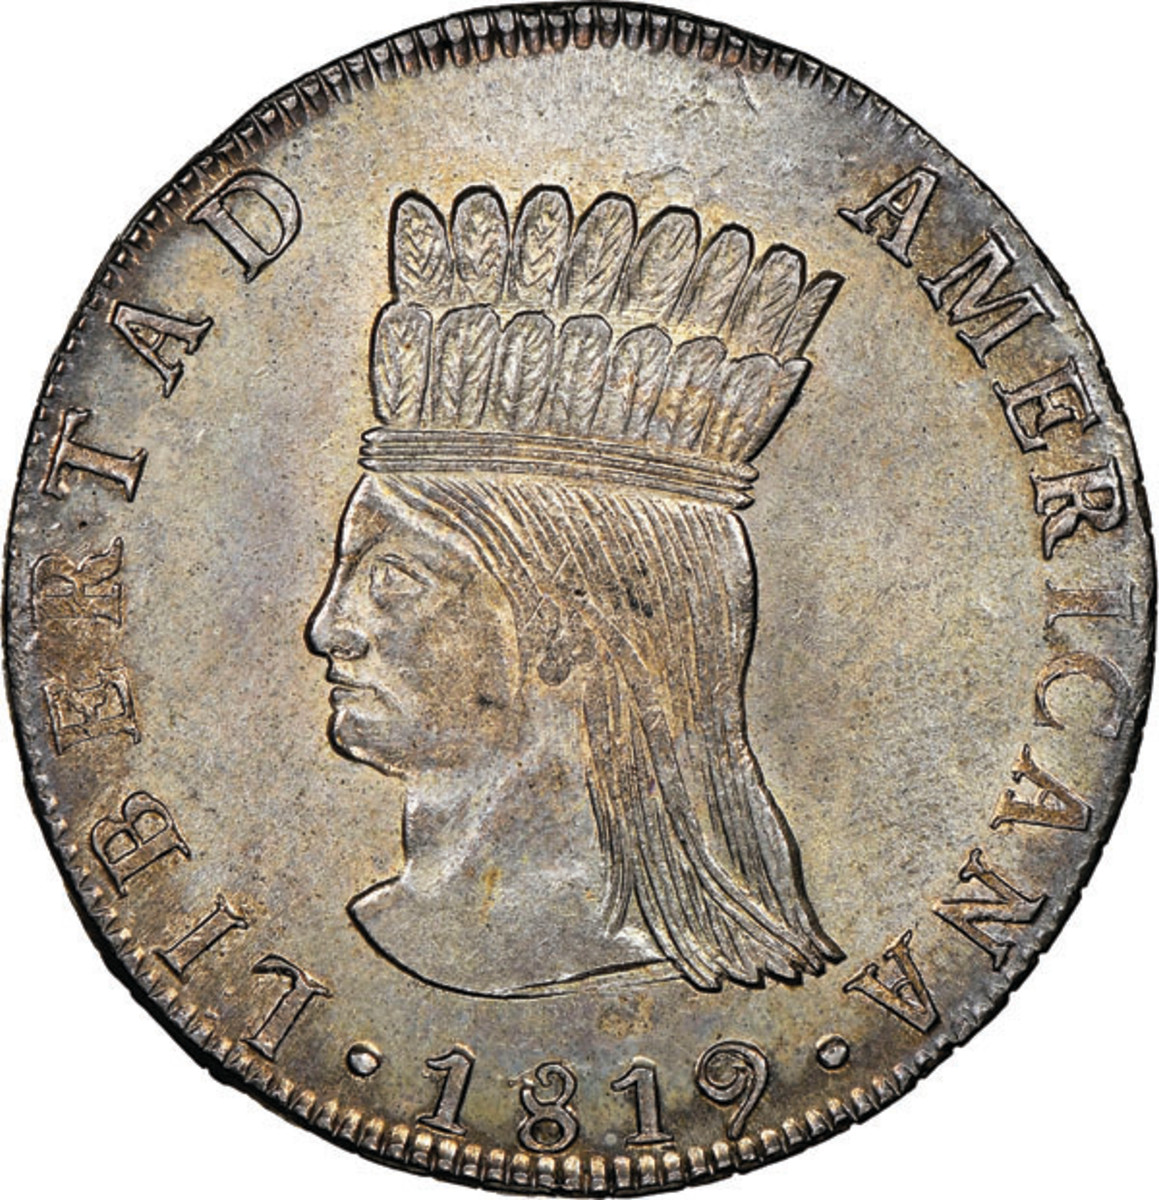 From the United Provinces of Nueva Granada comes this fantastically beautiful 8 reales of 1819 JF, the finest know by far at NGC MS64.